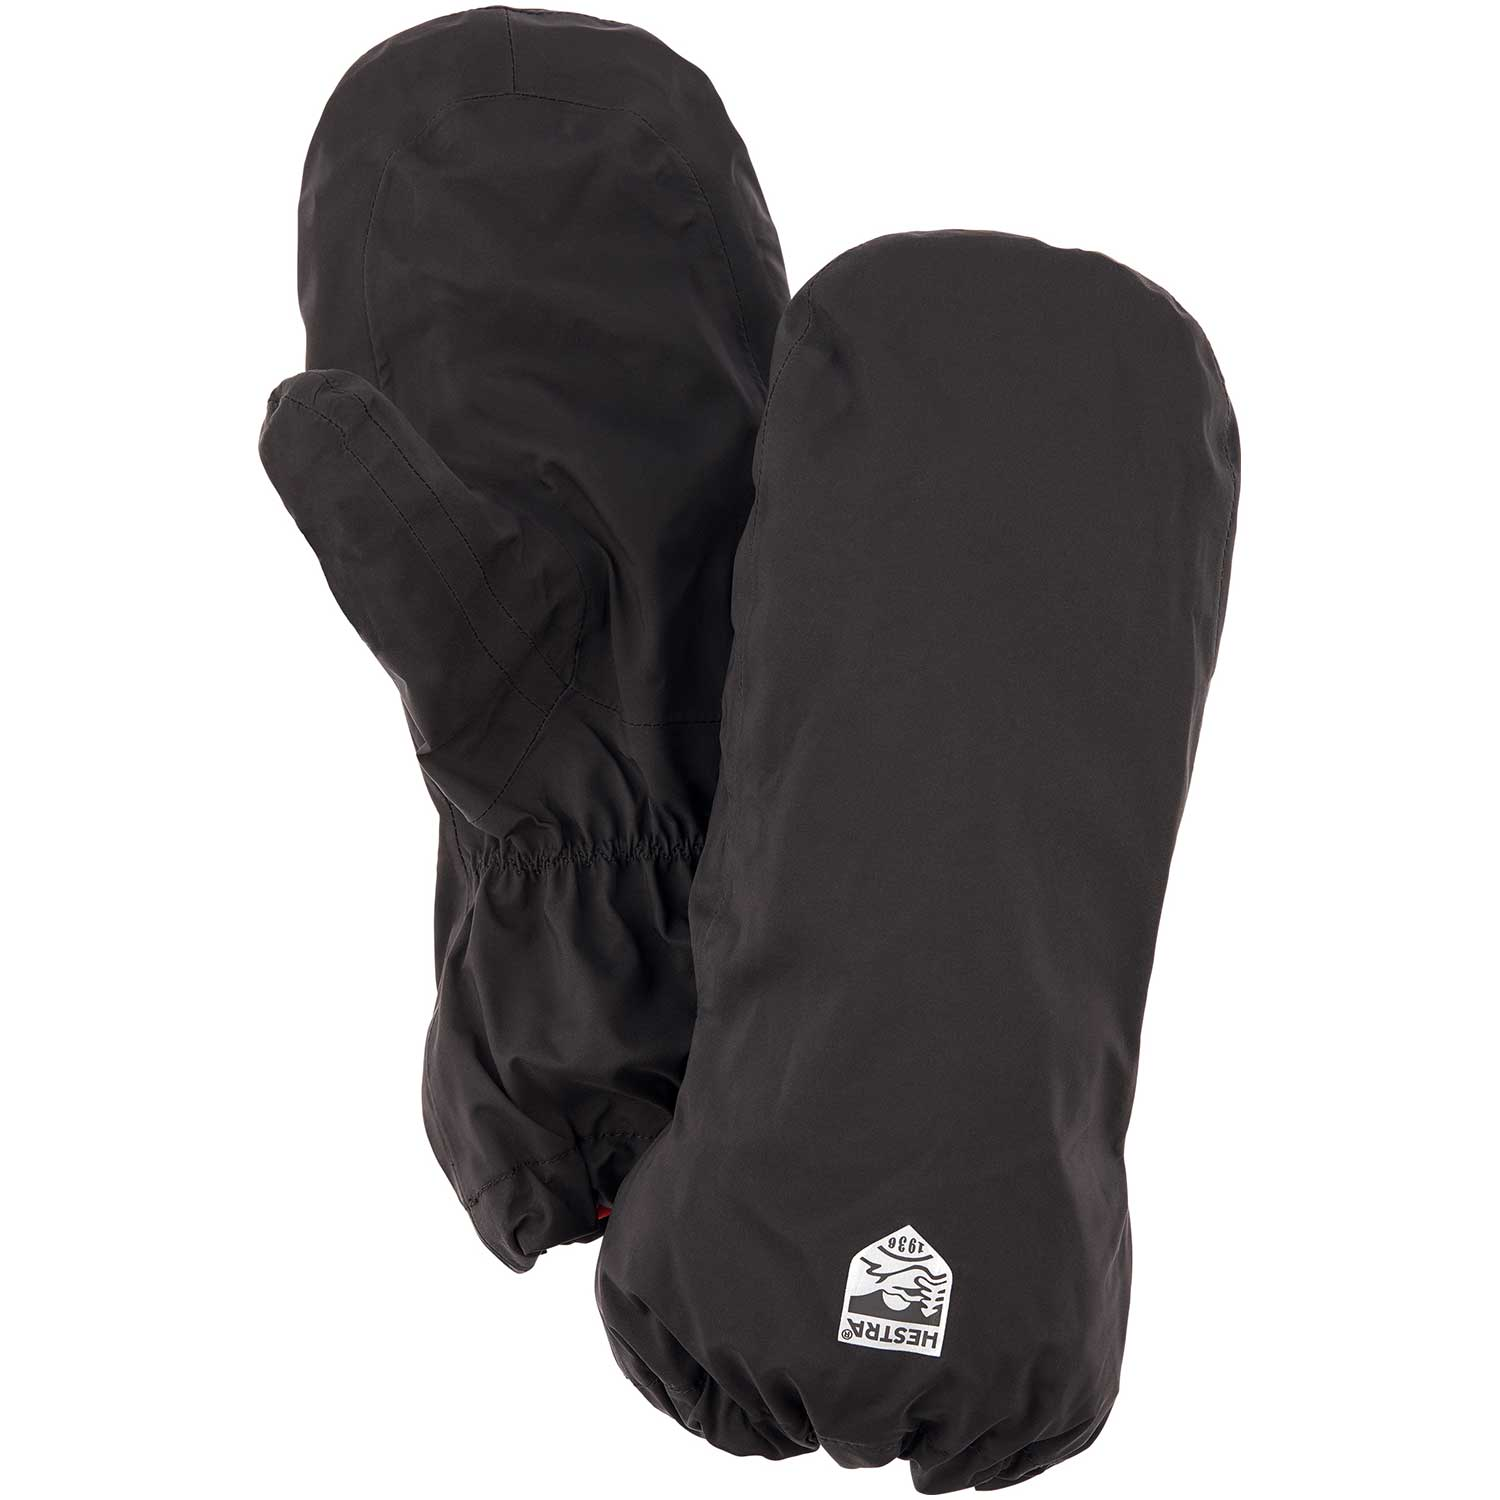 35201 SEAM SEALED MITT